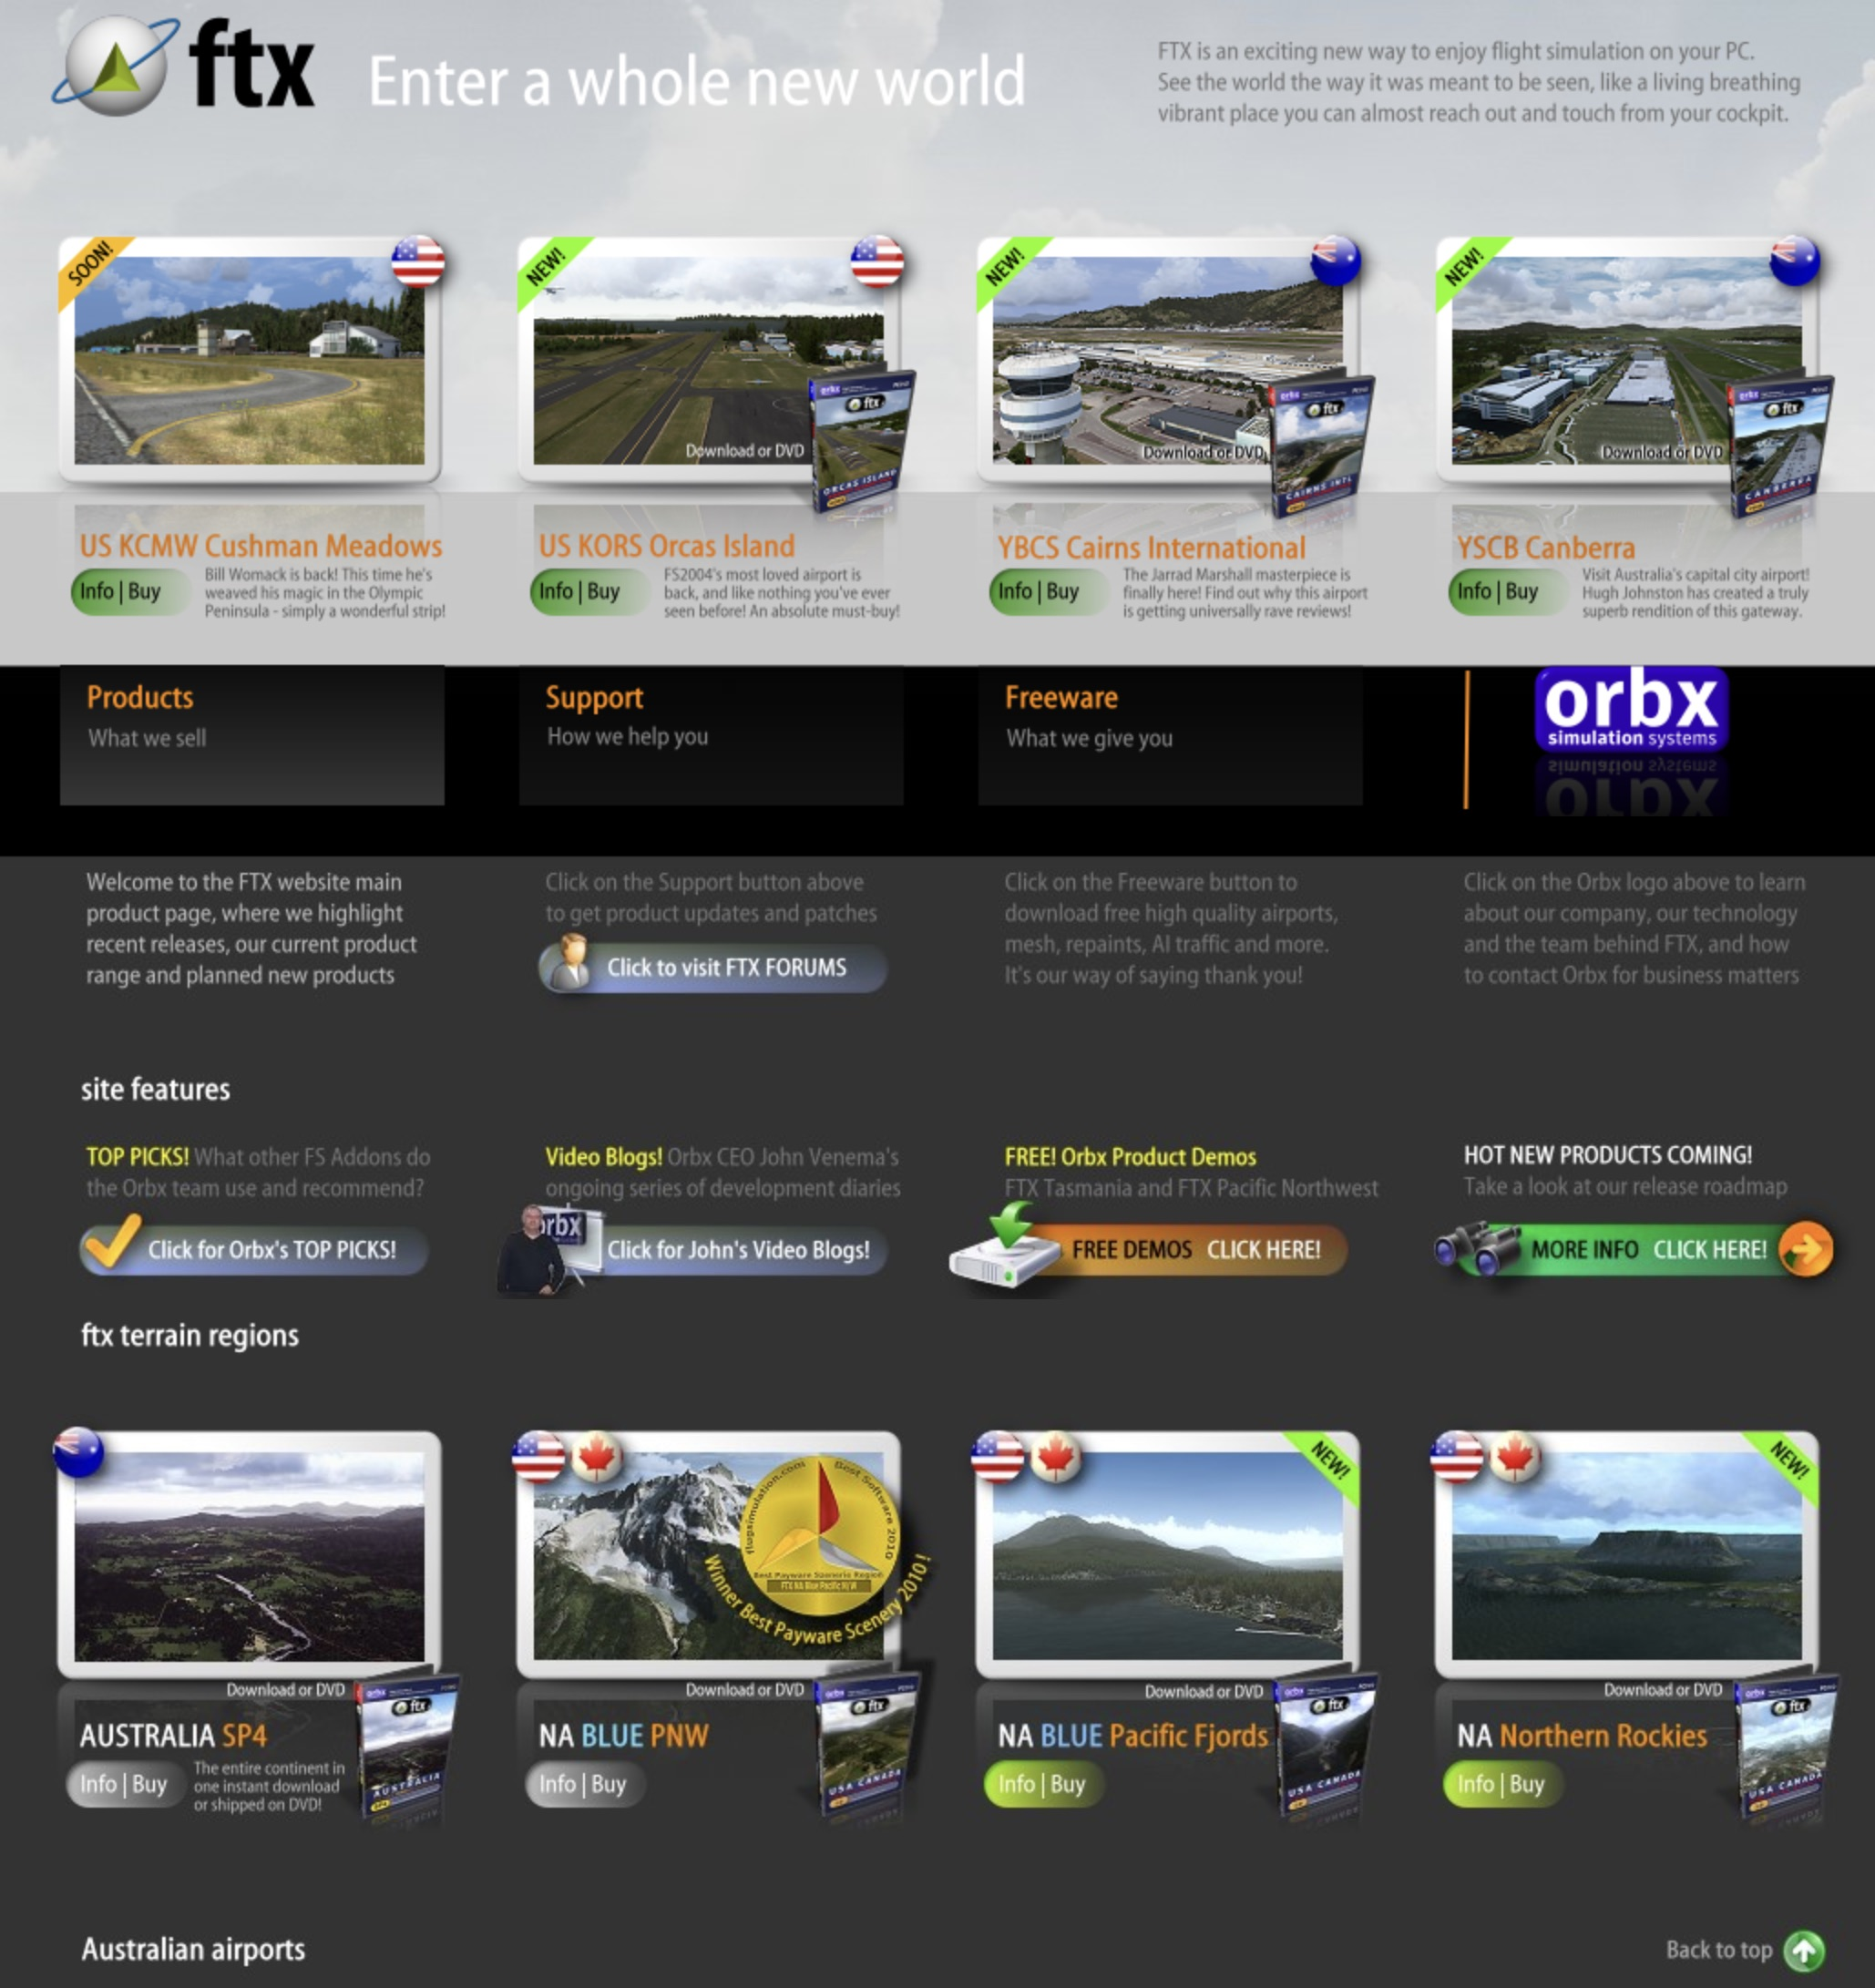 announcement] Orbx 10th Anniversary - The History of Orbx Series